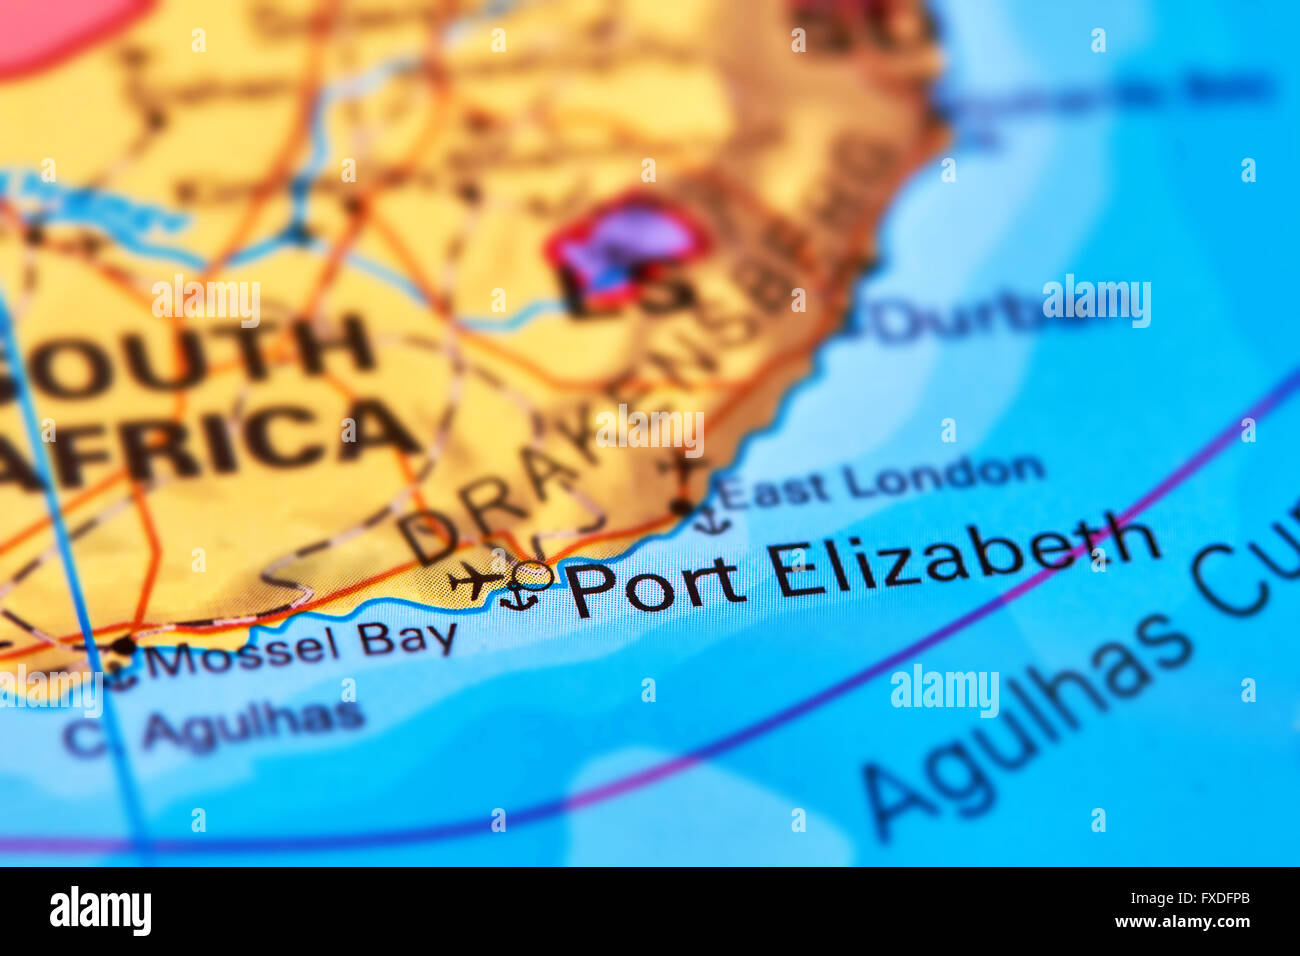 Port Elizabeth City Of South Africa On The World Map Stock Photo Alamy The icon links to further information about a selected division including its population structure (gender, population group, first language). https www alamy com stock photo port elizabeth city of south africa on the world map 102330659 html